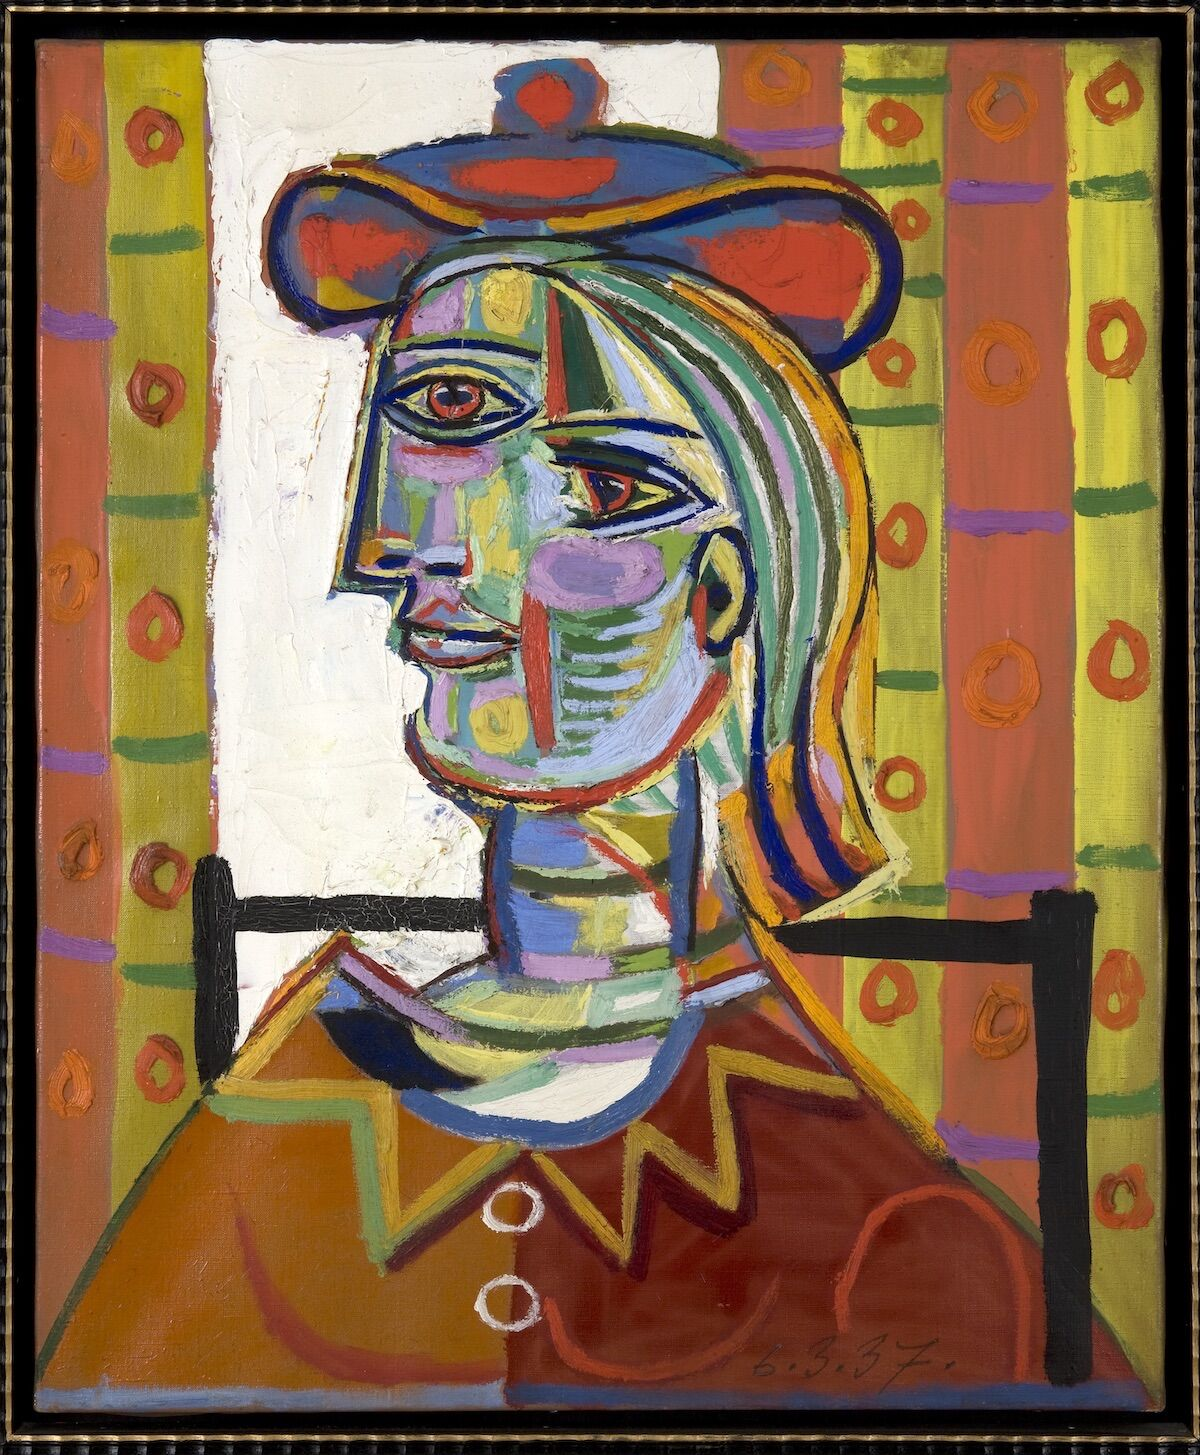 Pablo Picasso, Femme au beret et la collerette (Woman with Beret and Collar), 1937. © Estate of Pablo Picasso / Artists Rights Society (ARS), New York. Courtesy the Donald B. Marron Family Collection, Acquavella Galleries, Gagosian, and Pace Gallery.